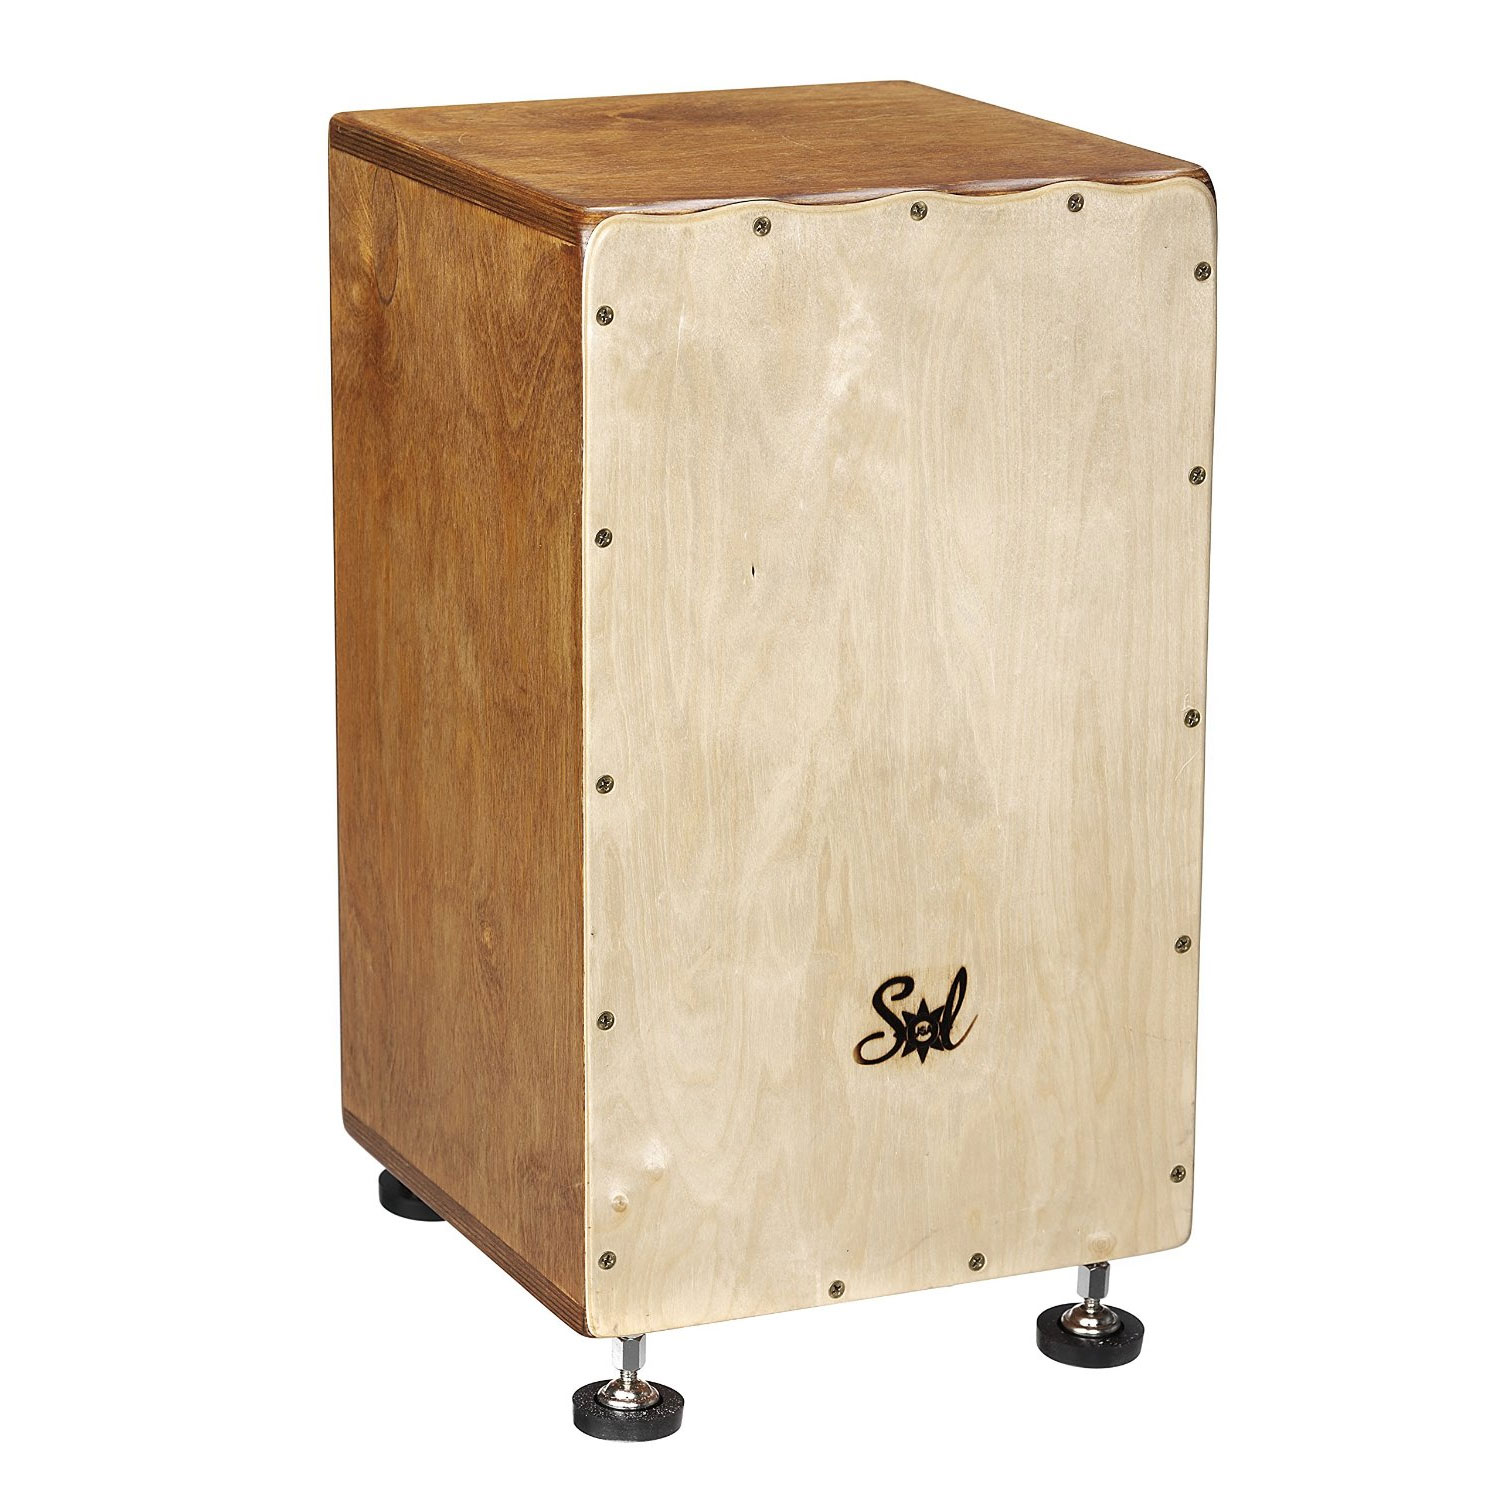 Sol Percussion USA Pro Cajon